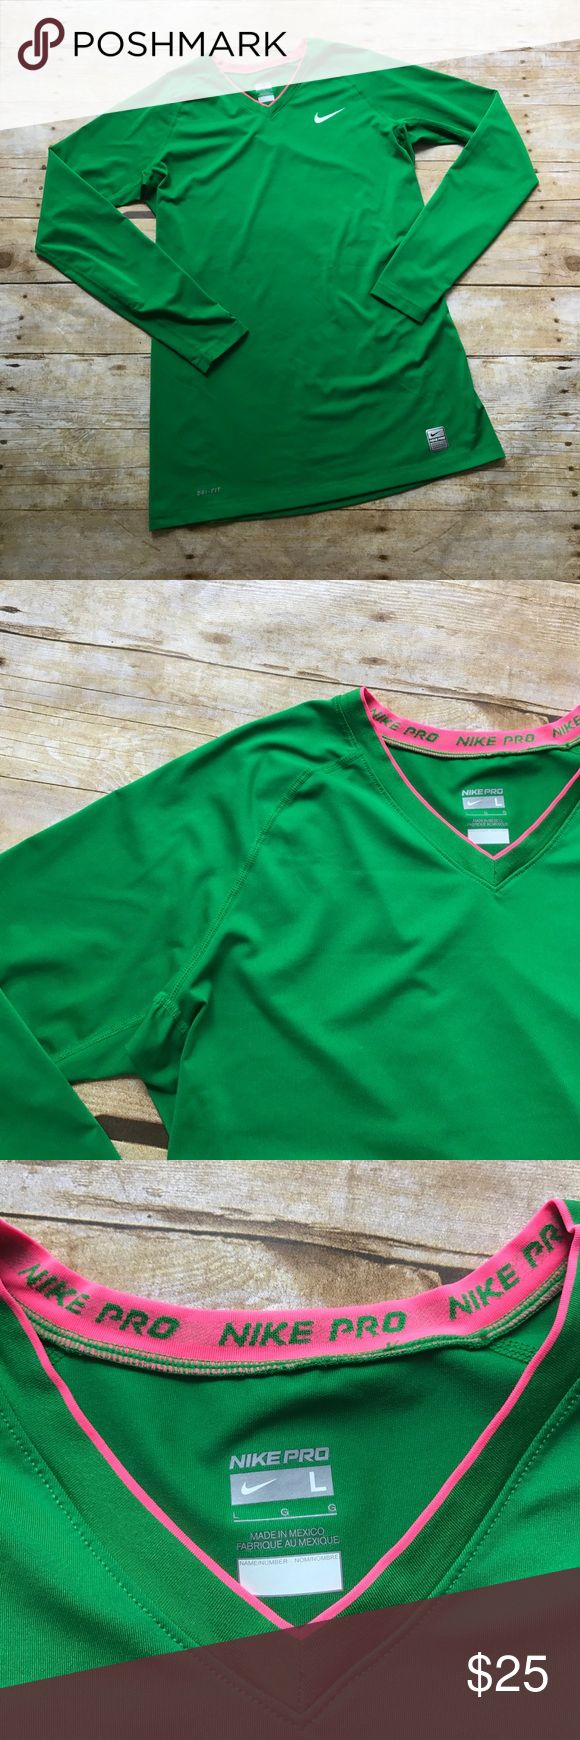 """Nike Pro Green Long Sleeve Top NWOT - Never worn! Nike Pro Kelly Green Long Sleeve Top with pink trim at collar. V neck. Dri fit material. Size Large. Measures approximately 16"""" across at bust, 28"""" from shoulder to hem. From a smoke free home! Nike Tops"""